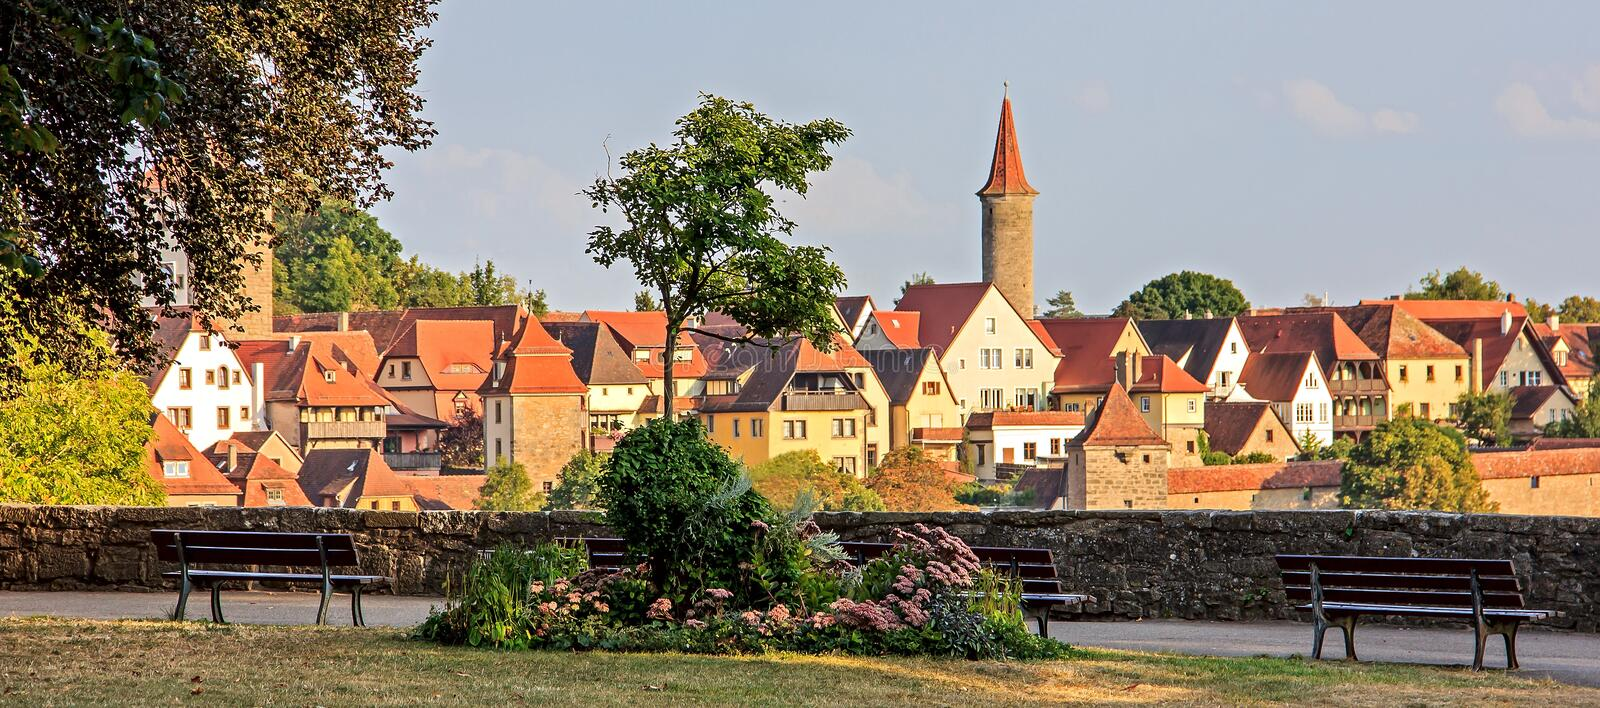 Relaxing view of Castle Garden, Burggarten; and view of old town, Rothenburg ob der Tauber, Germany stock photos